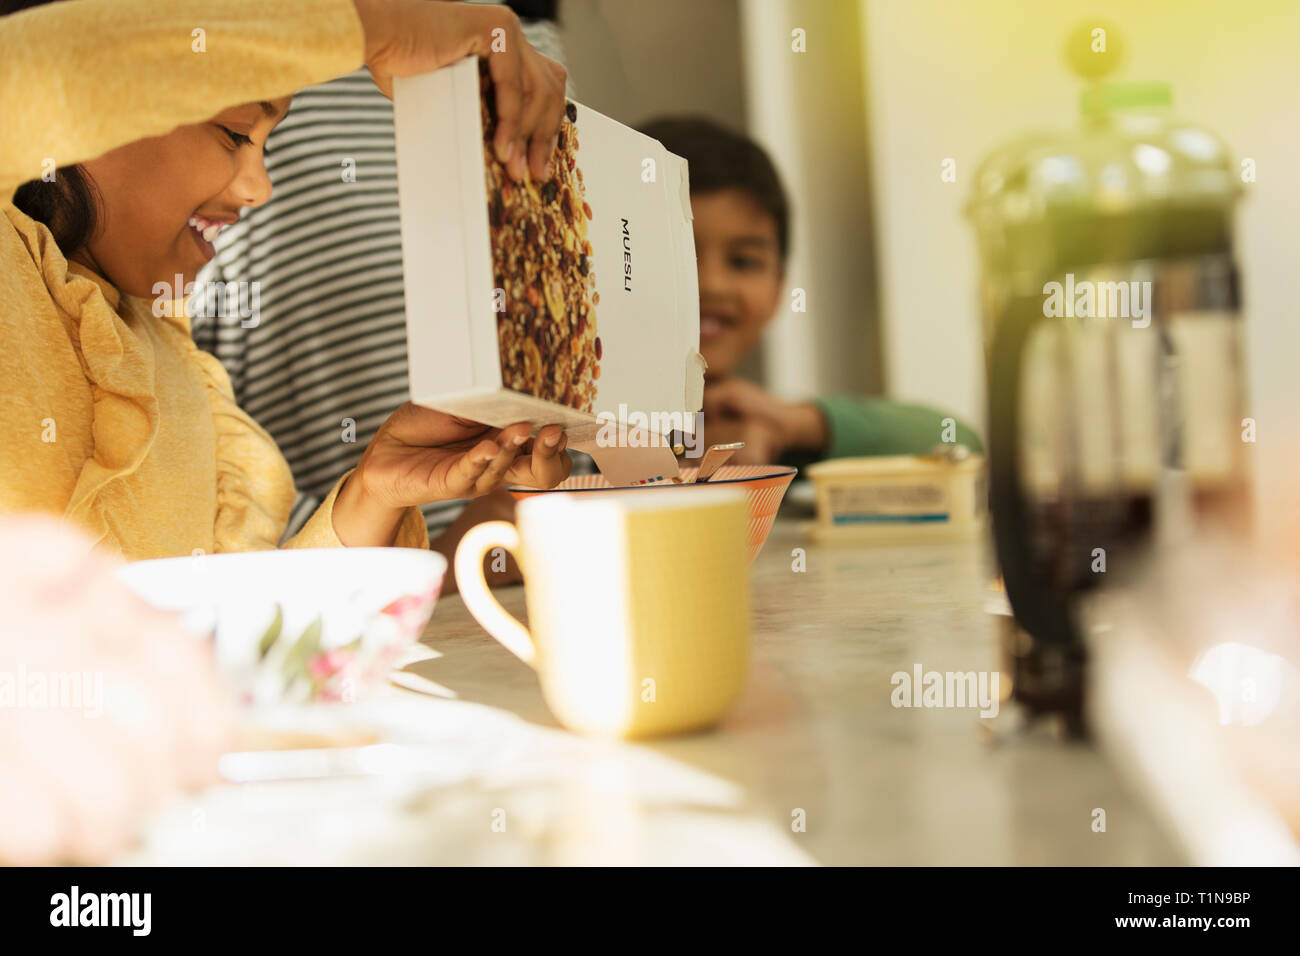 Girl pouring breakfast cereal into bowl Stock Photo